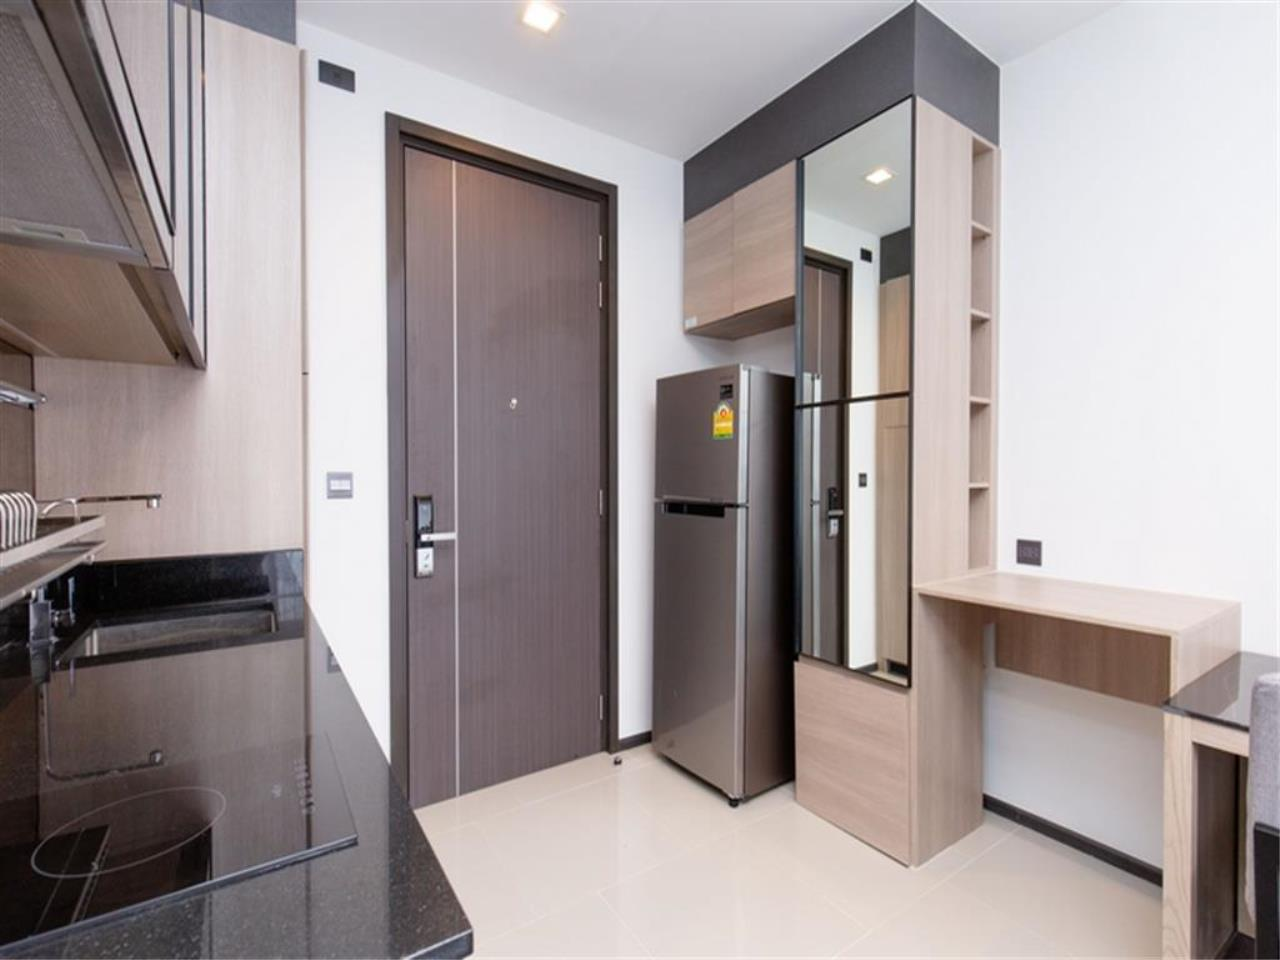 Plus Property Agency's Rent : CD190987 THE LINE ASOKE-RATCHADA Condominium New Petchburi - Rama 9 Bangkok 18